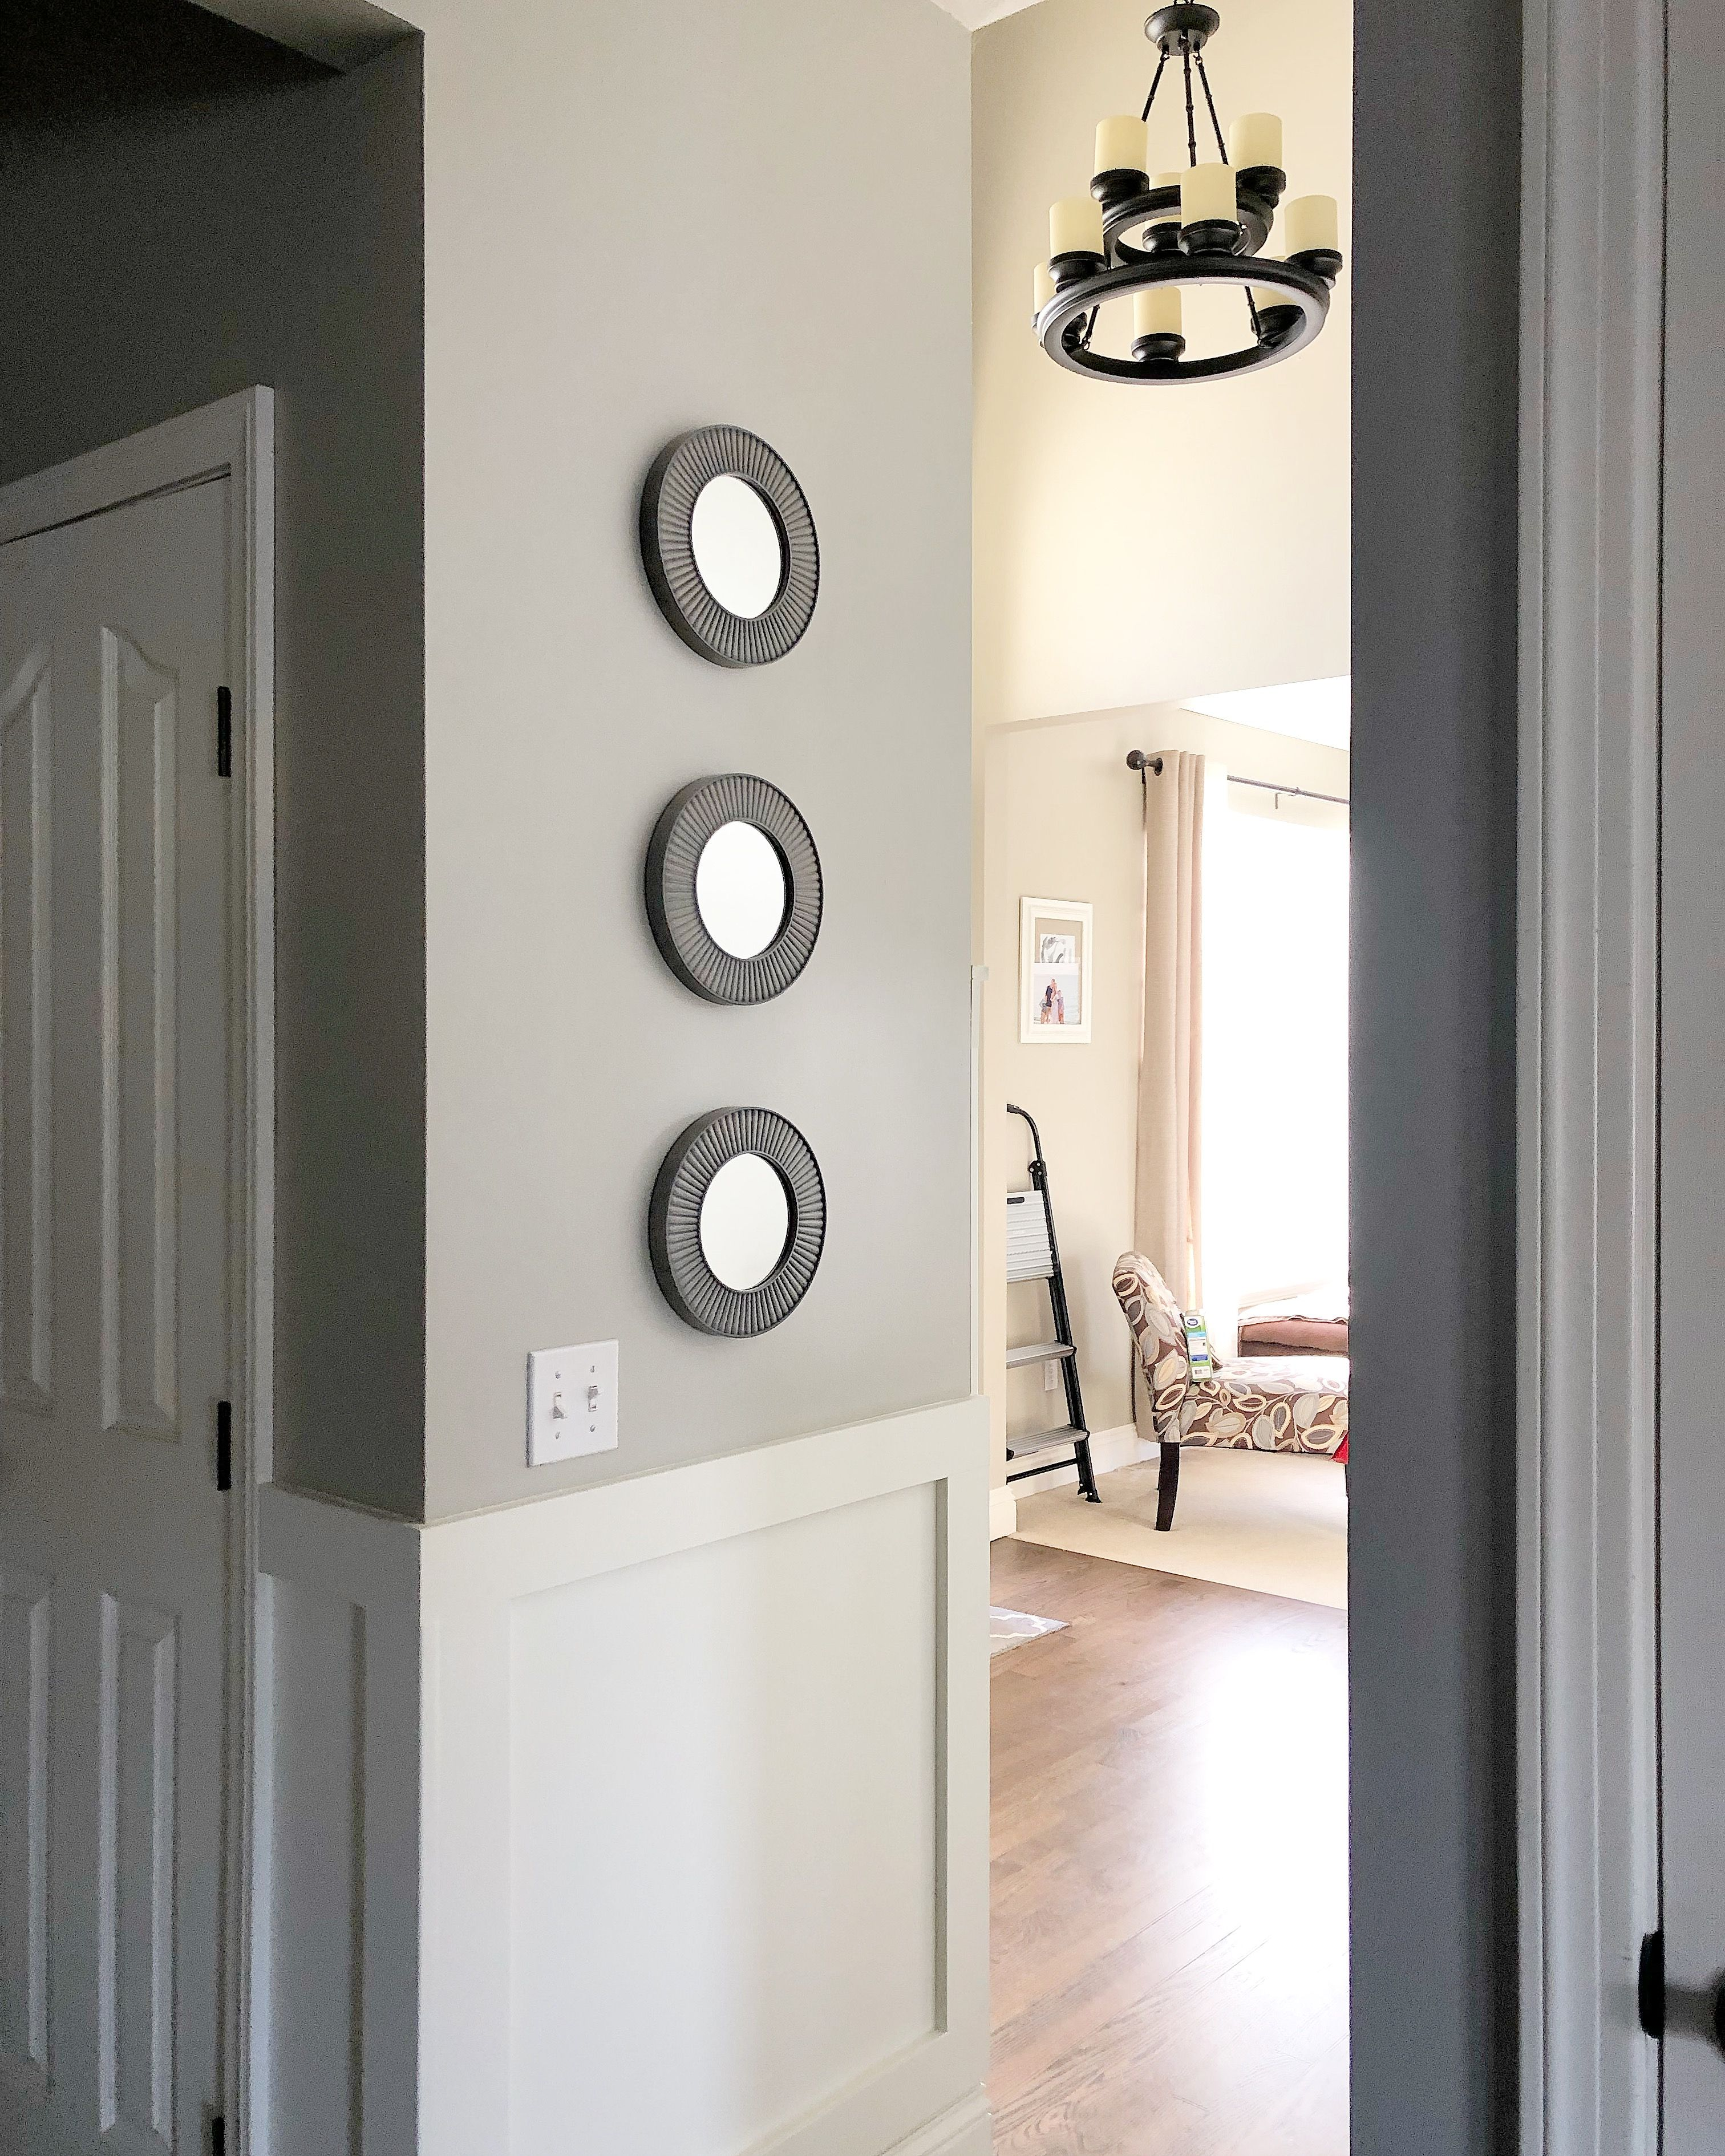 Sherwin Williams Mindful Gray And Jogging Path In Foyer Mindful Gray Sherwin Williams Home Projects Mindful Gray